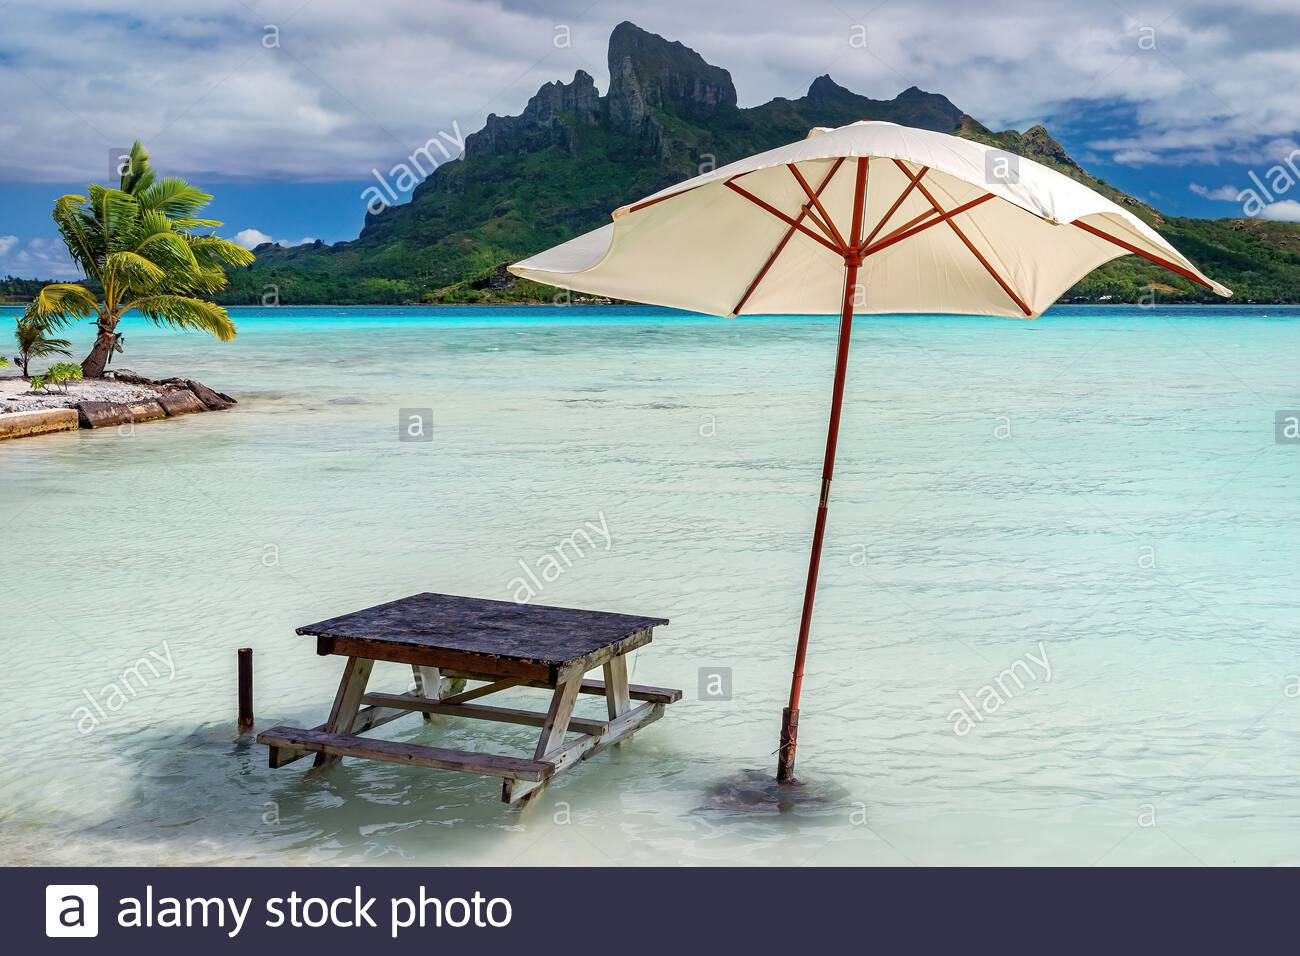 bora-bora-french-polynesia-having-lunch-